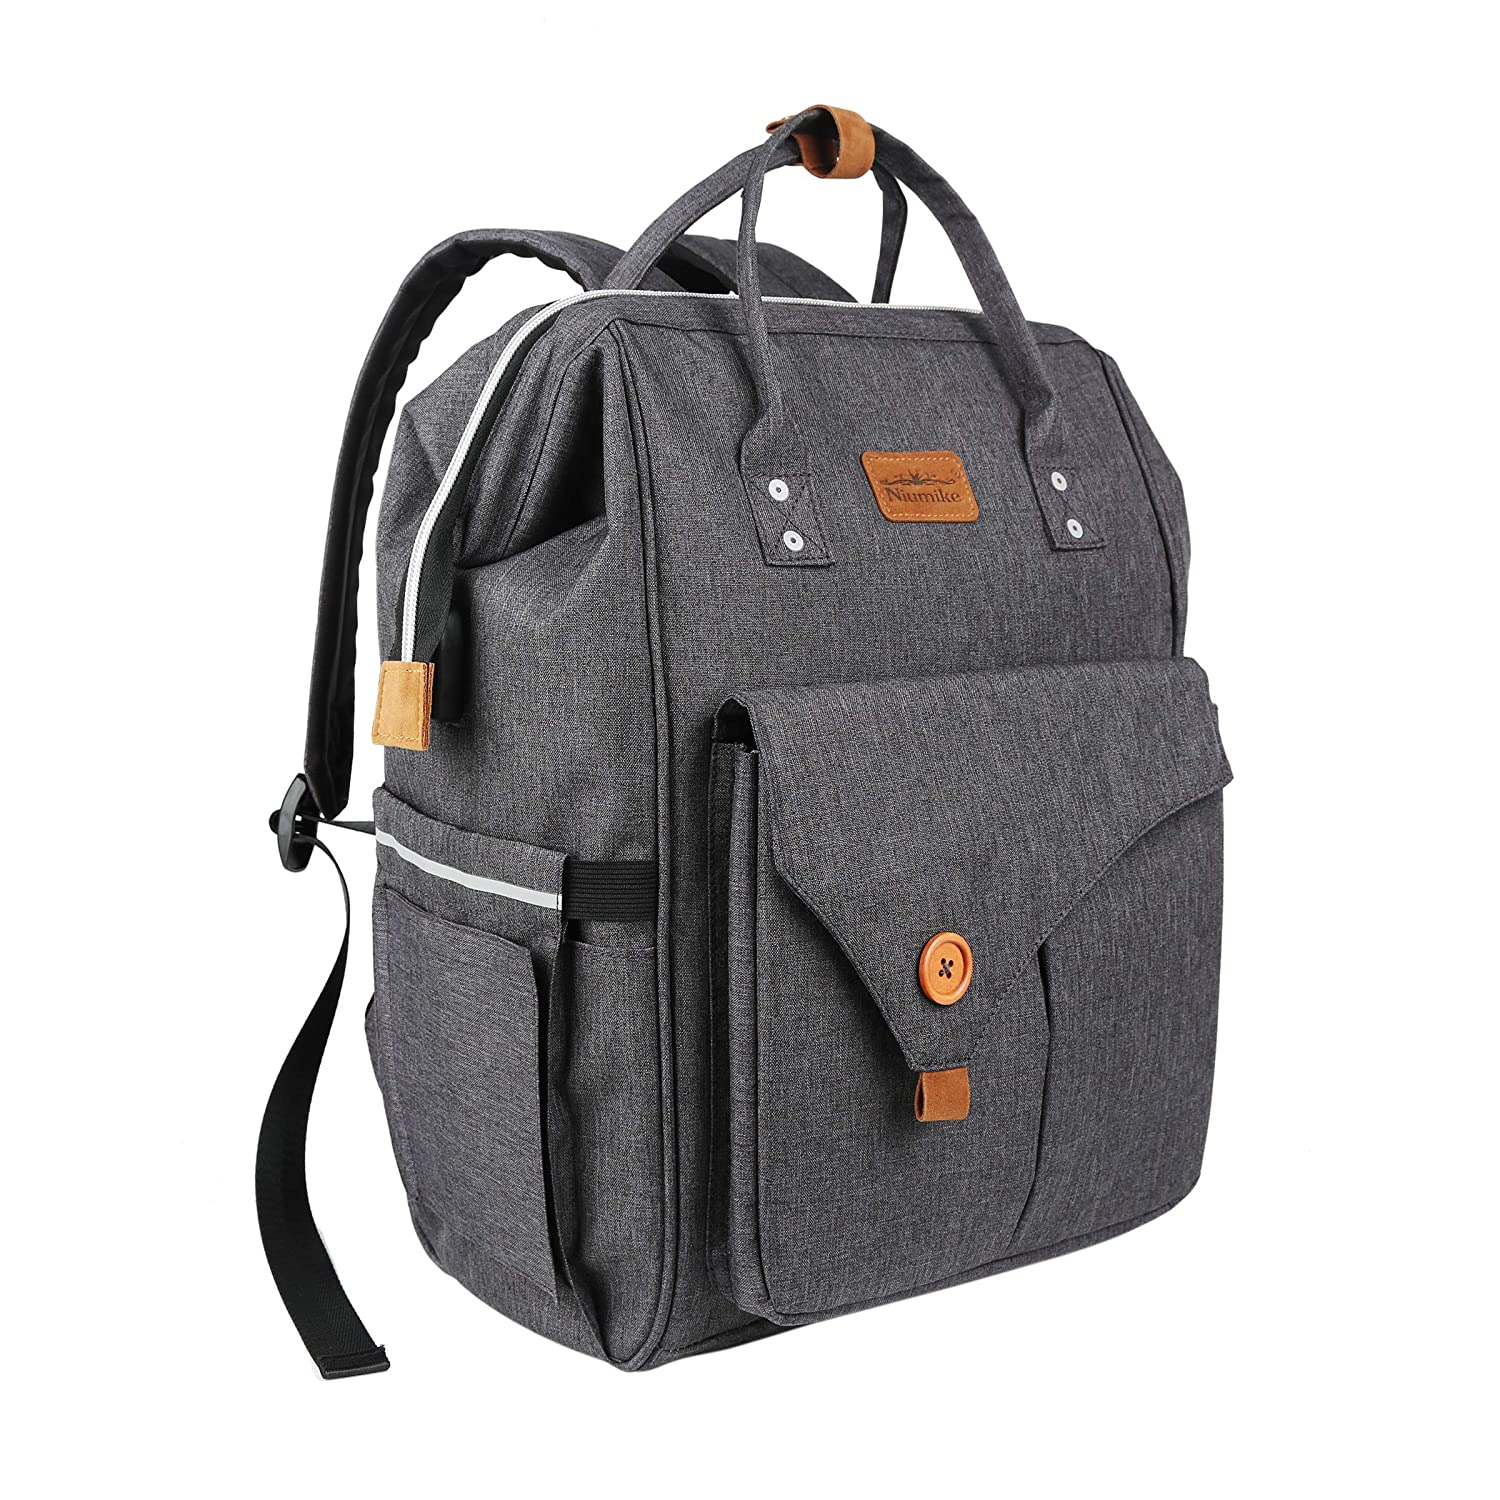 Diaper Bag Backpack with Changing Pad, Niumike Multifunction Travel Large Capacity Waterproof Maternity Baby Nappy Bags